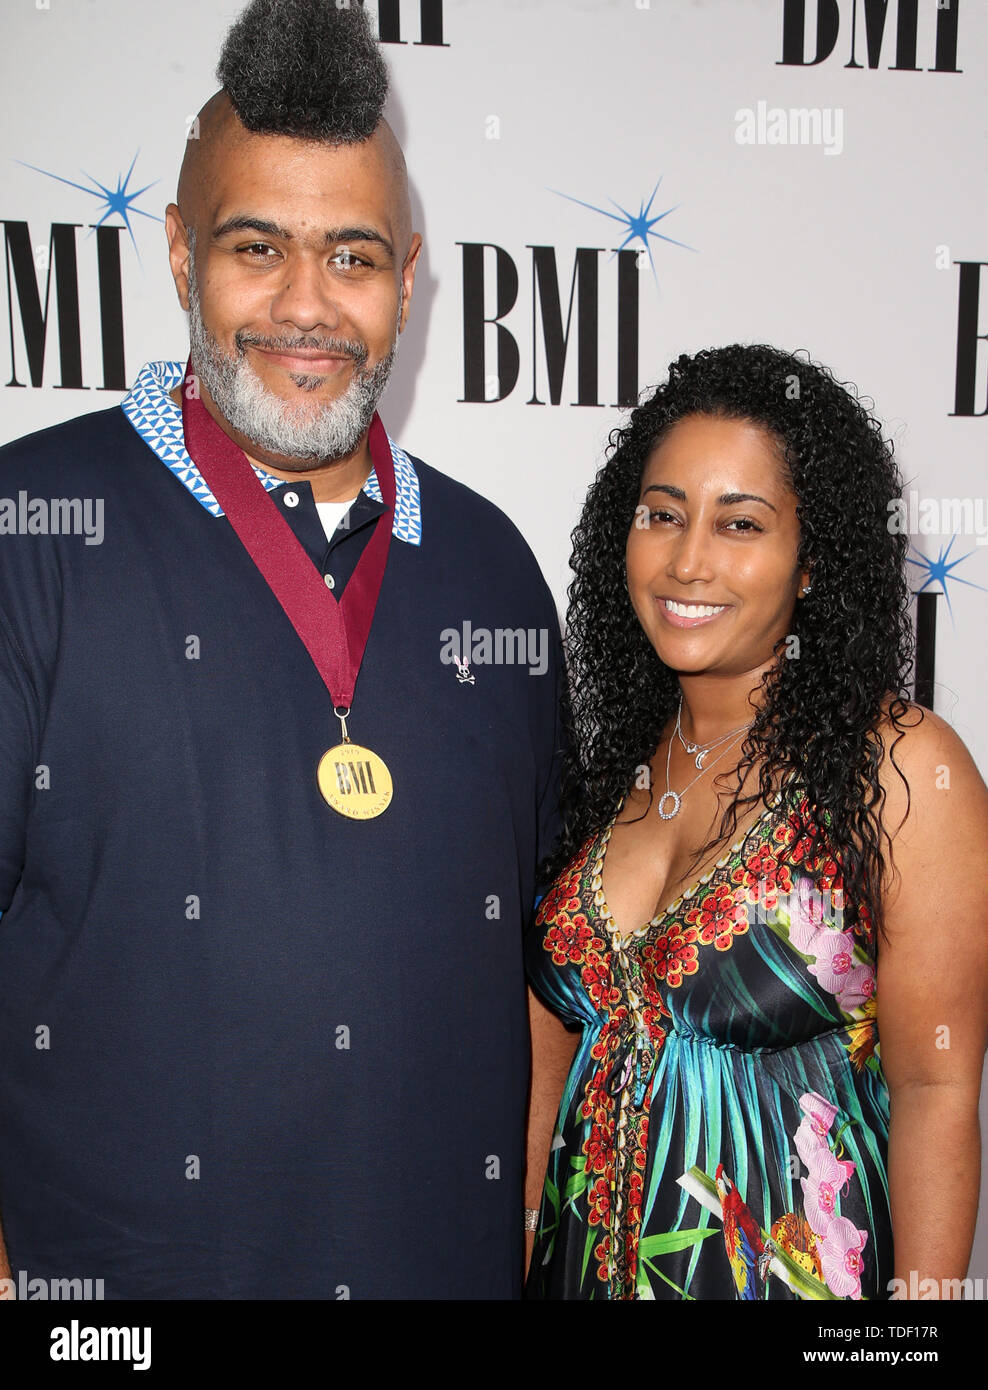 67th Annual BMI Pop Awards  Featuring: Warren 'Oak' Felder, Guest Where: Beverly Hills, California, United States When: 15 May 2019 Credit: FayesVision/WENN.com - Stock Image